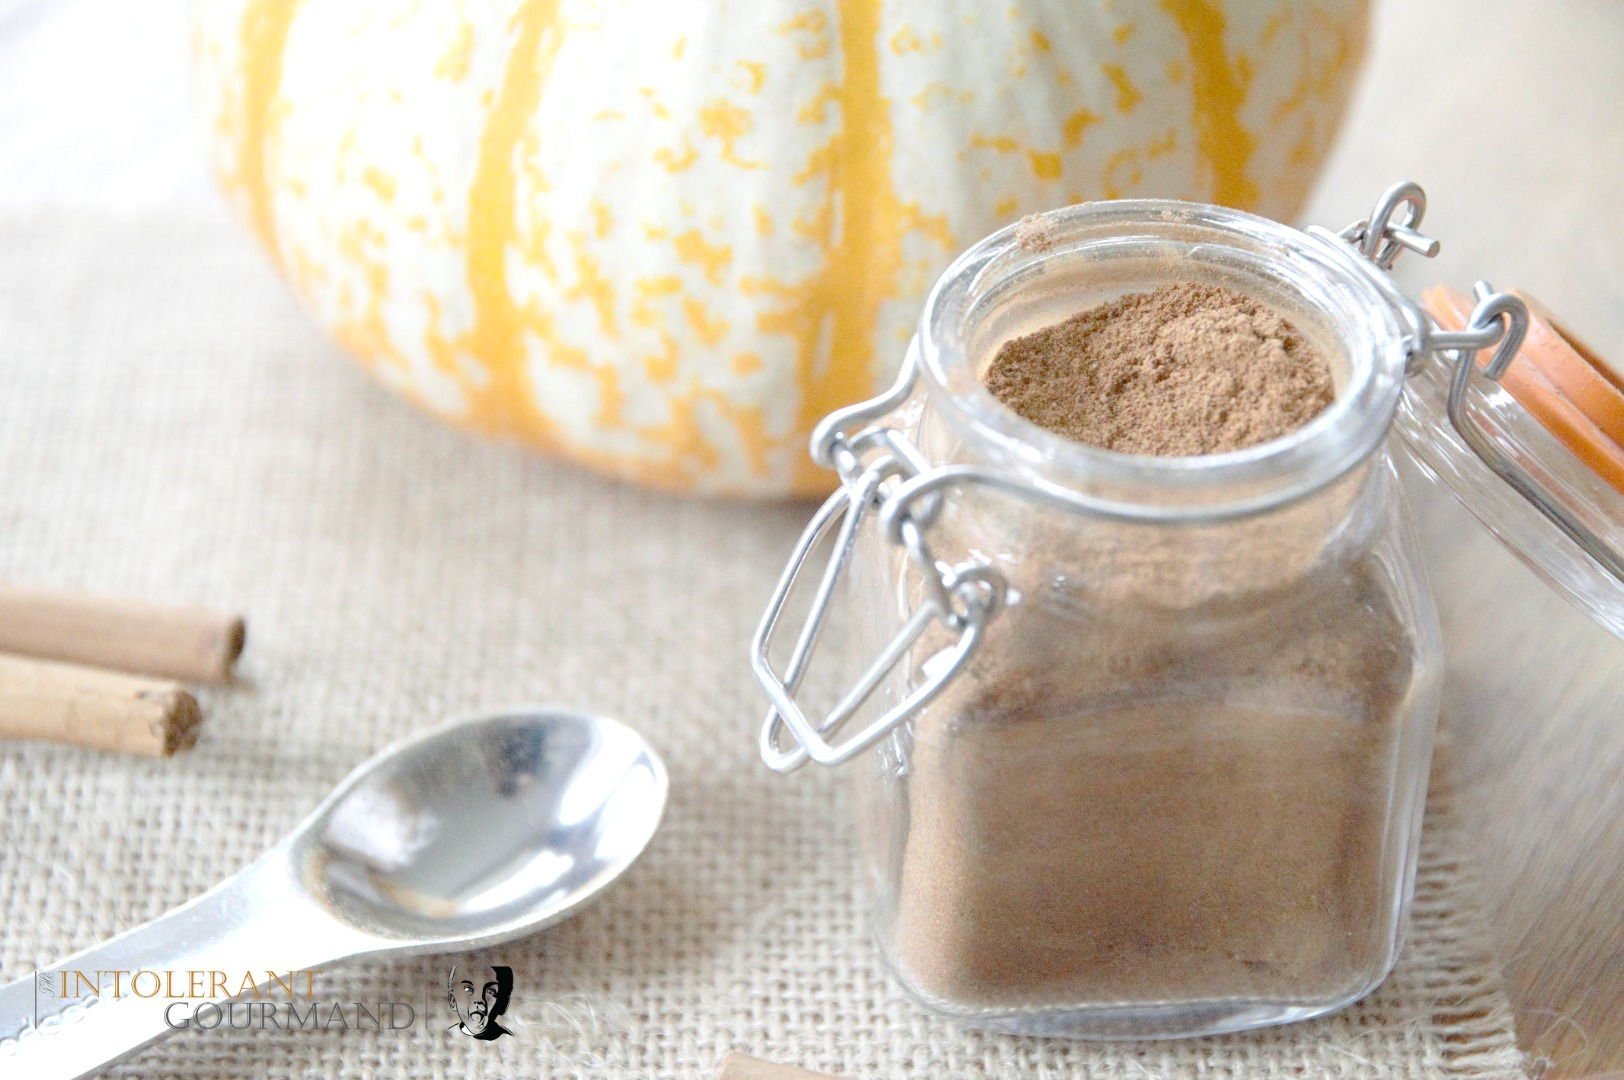 Pumpkin spice mix - perfect for crumbles, lattes, cheesecake, cake and more! www.intolerantgourmand.com